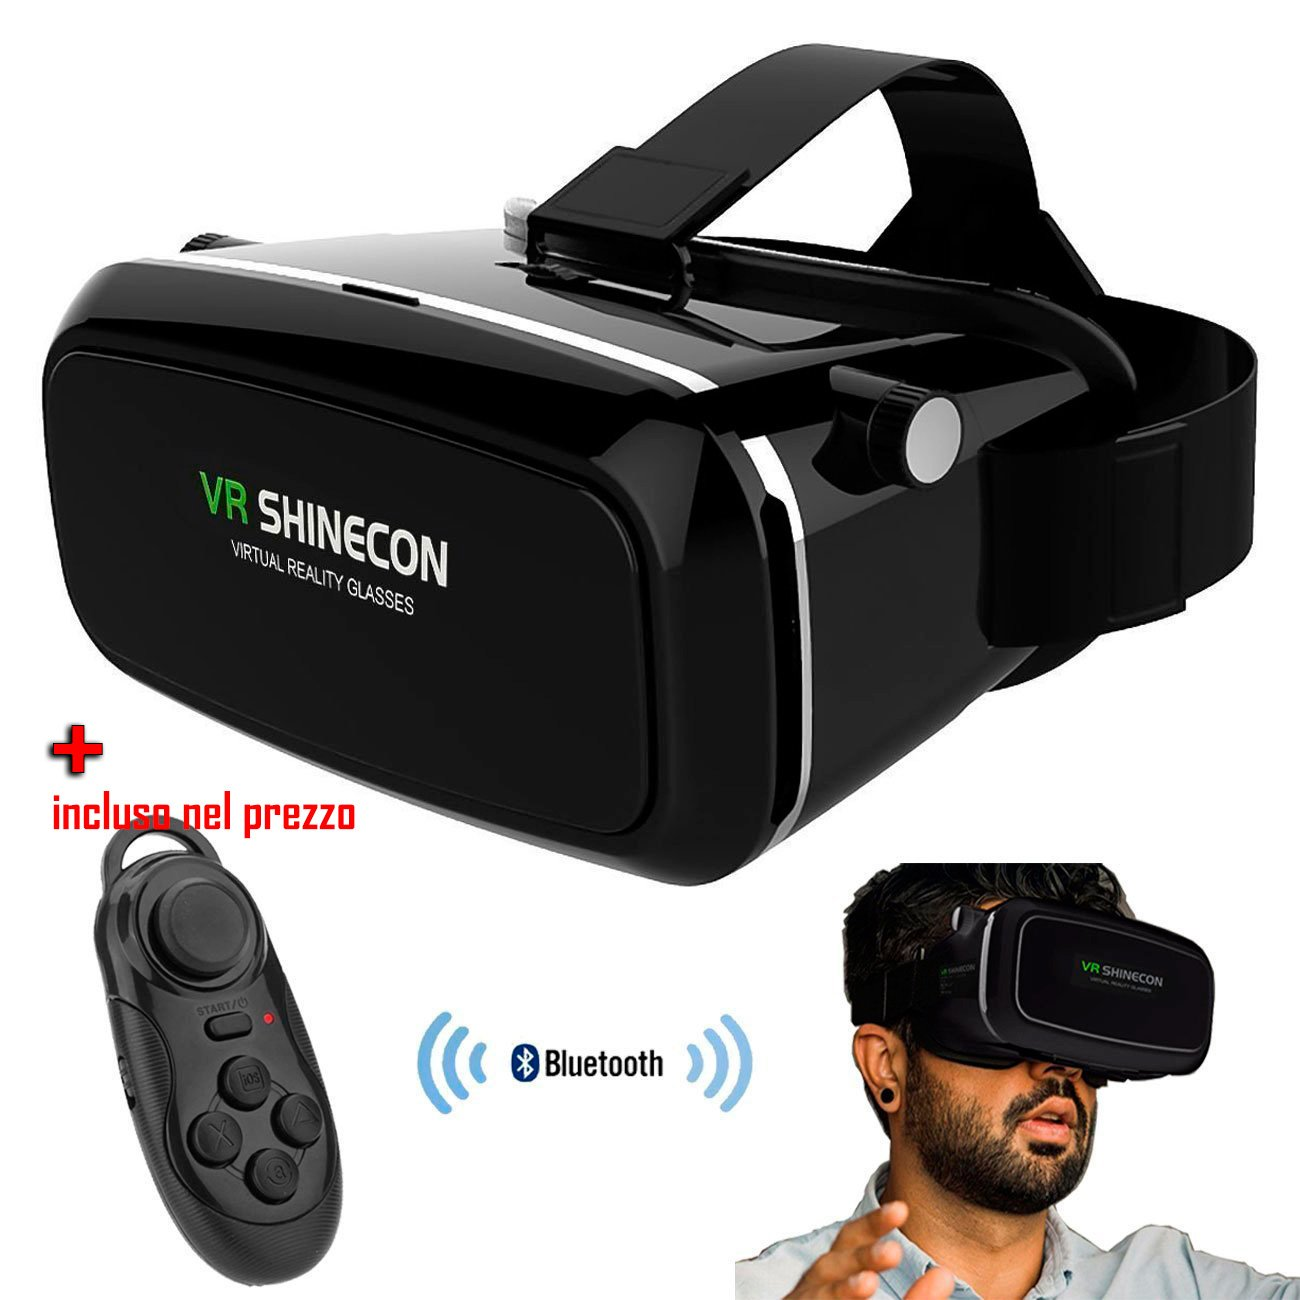 Virtual Reality 3D Video Glasses per iPhone 6 Plus / Samsung Galaxy S6 etc. 3.5 inch - 6.0 inch Android iOS Smartphone(Black) VR SHINECON